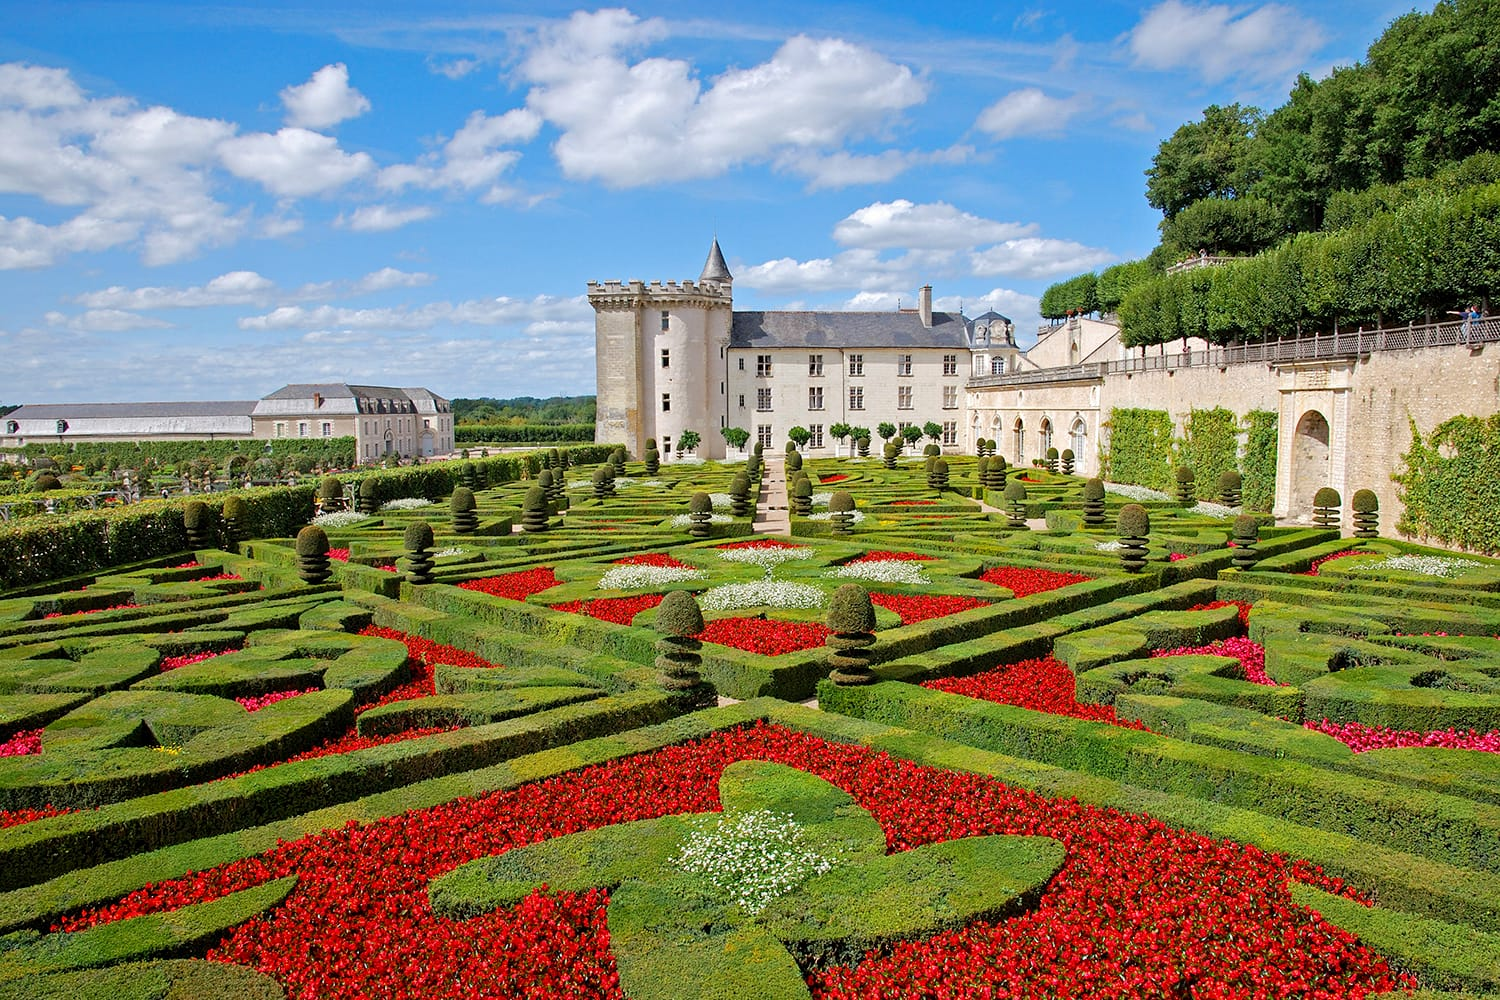 Chateau de Villandry in the Loire Valley, France